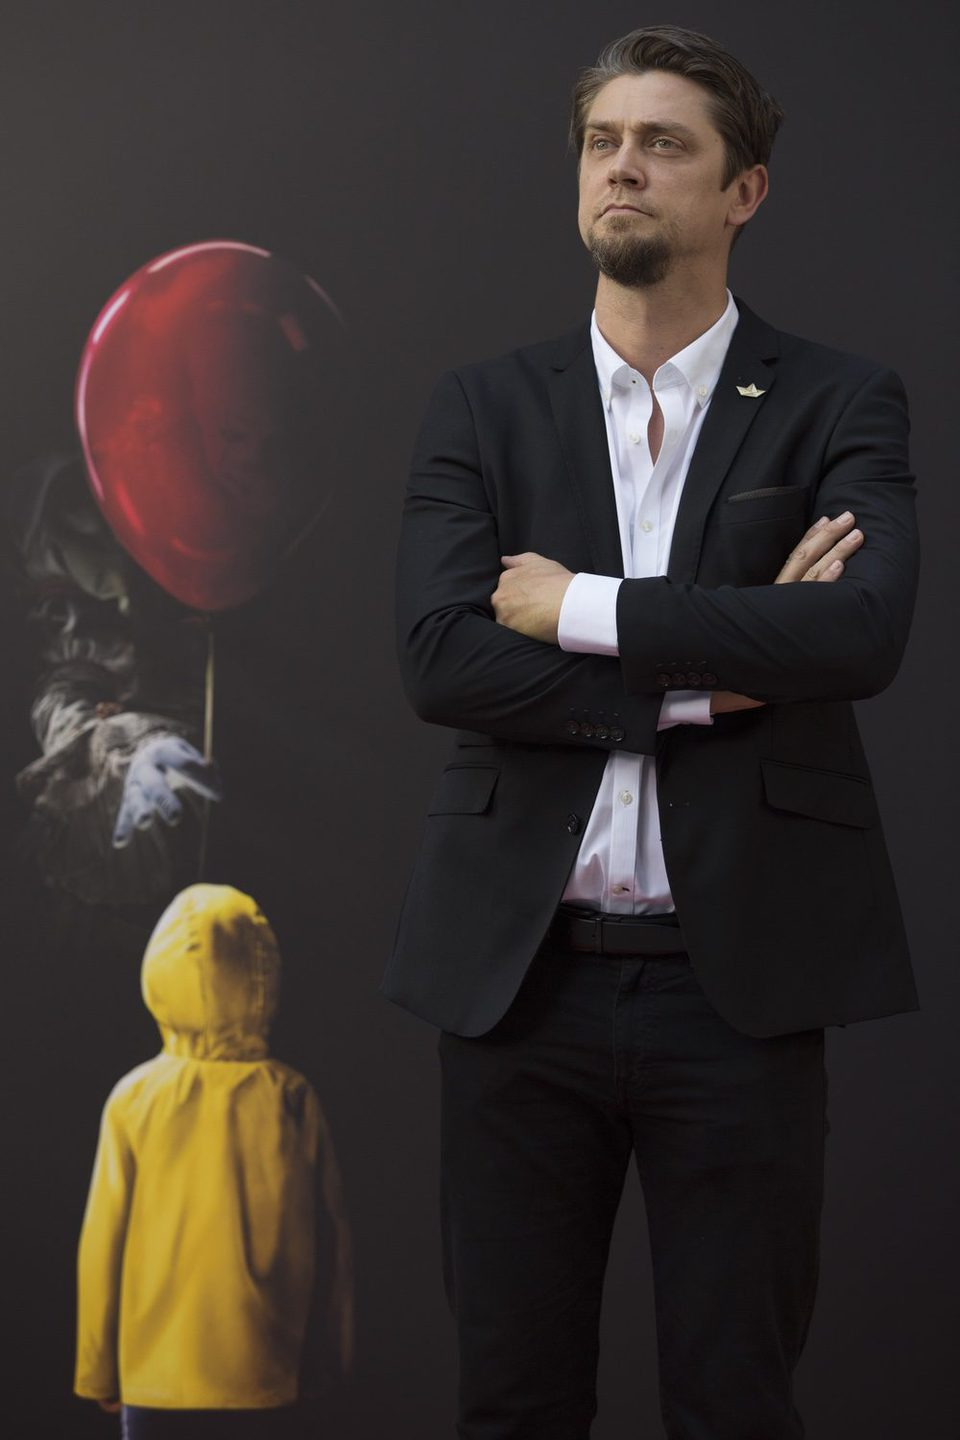 Andy Muschietti posa a lo James Bond en la presentación de 'It' en Madrid